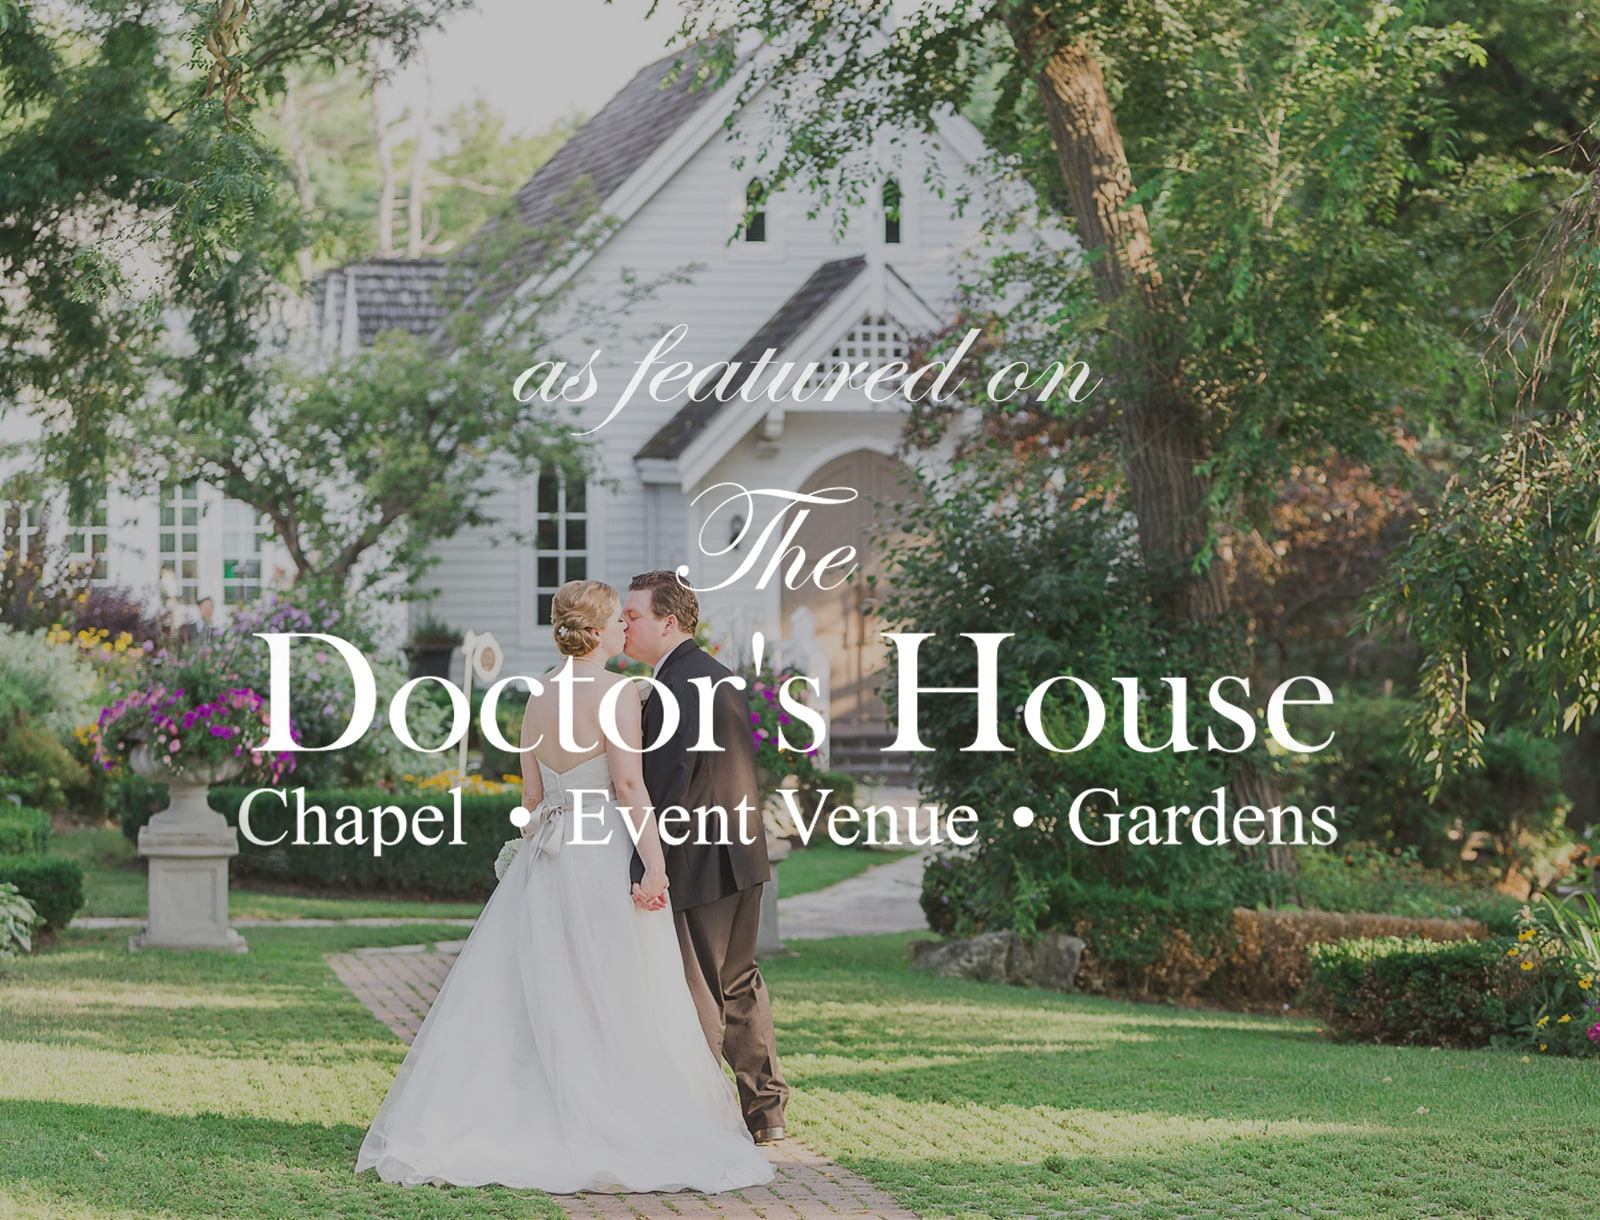 Doctor's House Real Wedding Promo